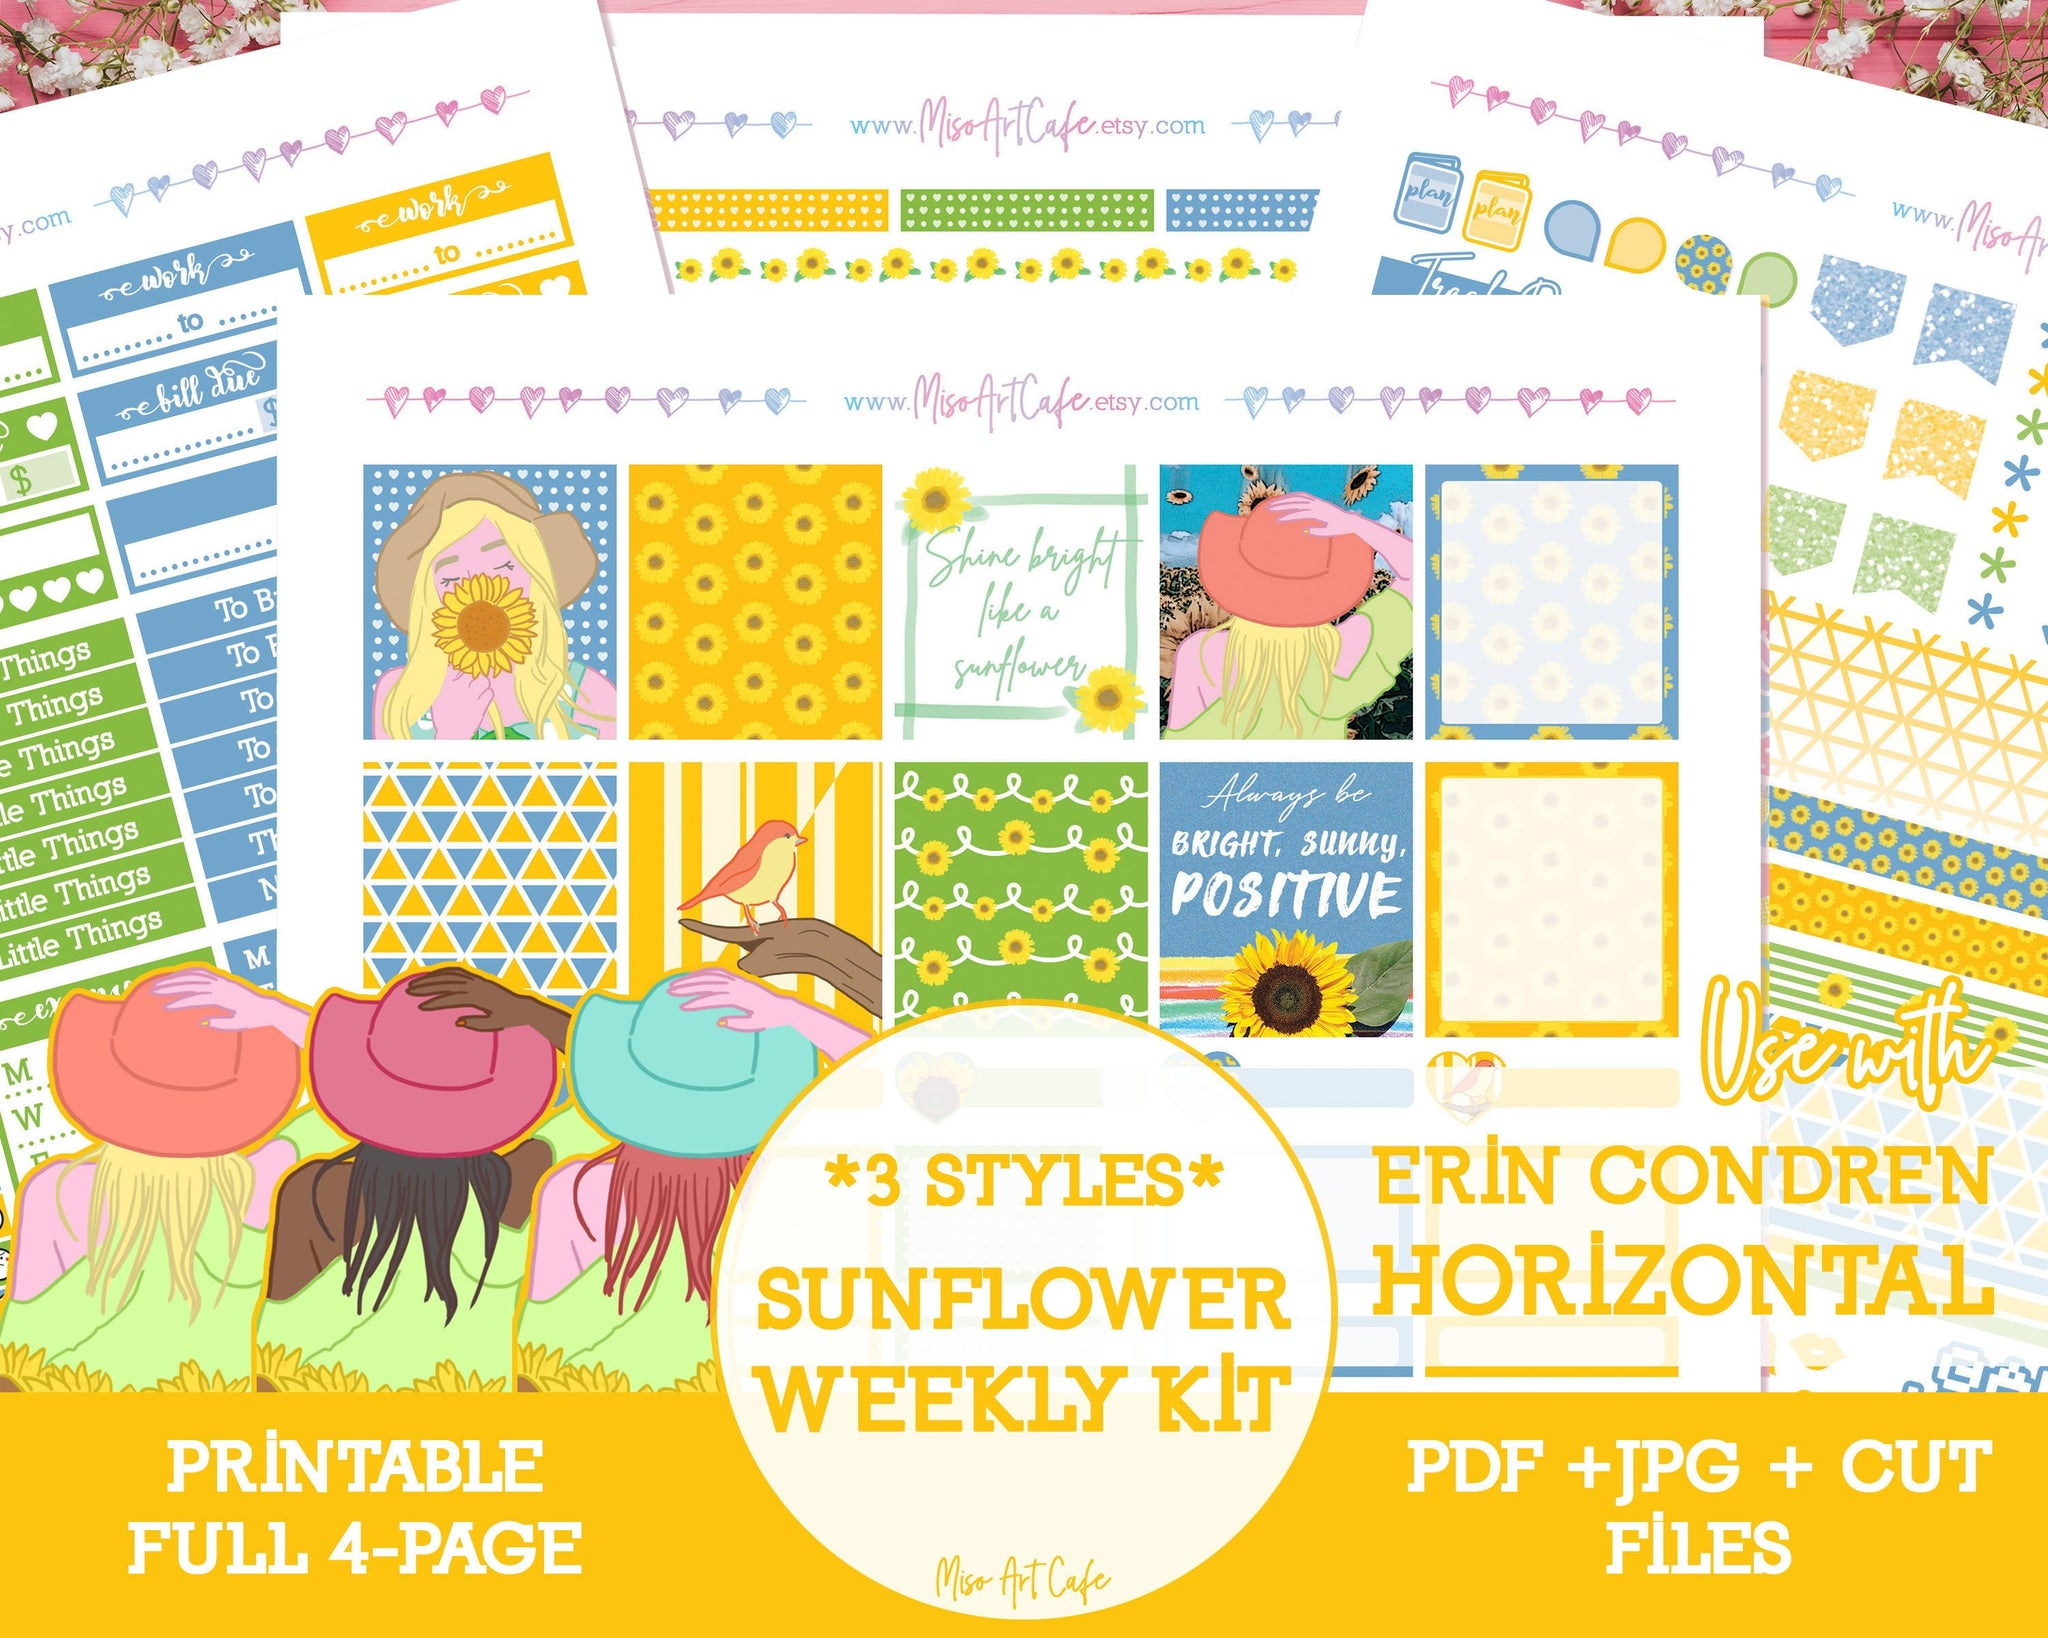 Printable Sunflower Weekly Kit - Erin Condren Horizontal - Miso Art Cafe